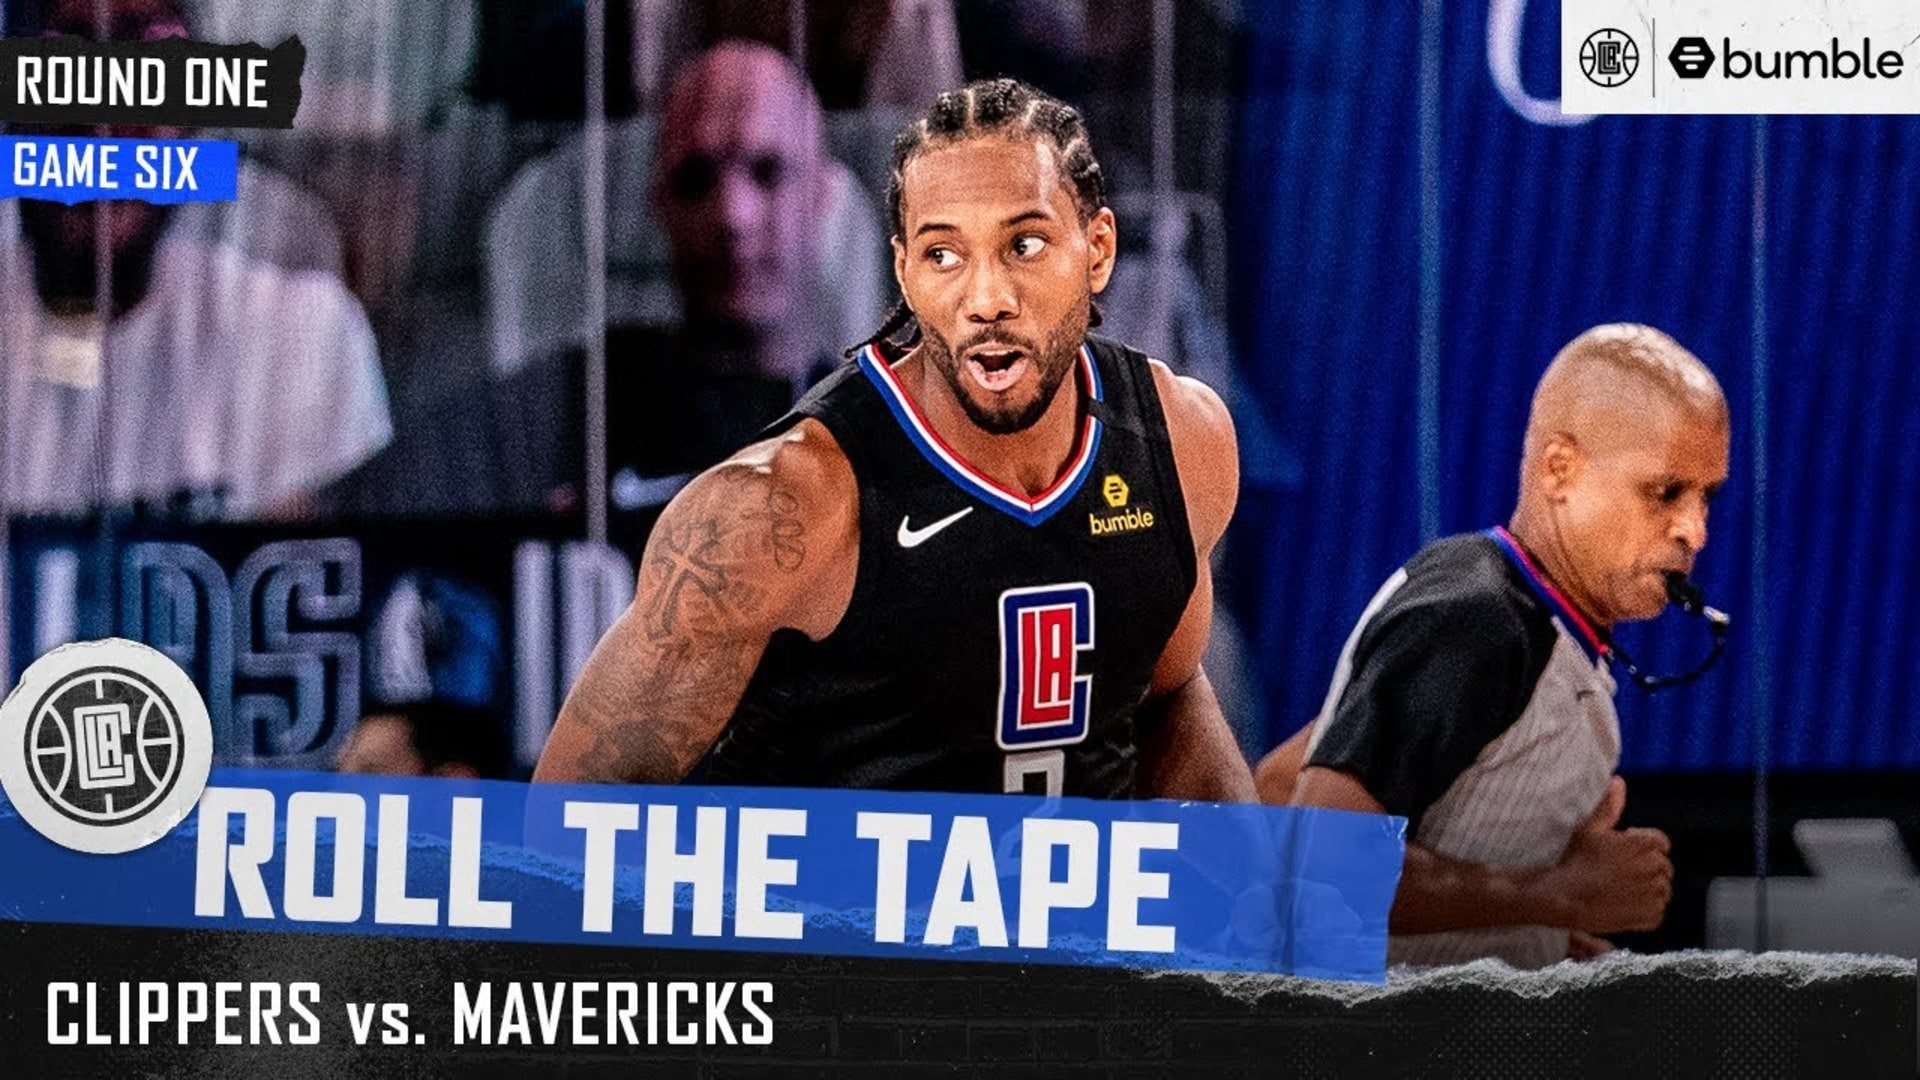 Inside the Clippers' First Round Clinching Win vs. Dallas | Roll the Tape